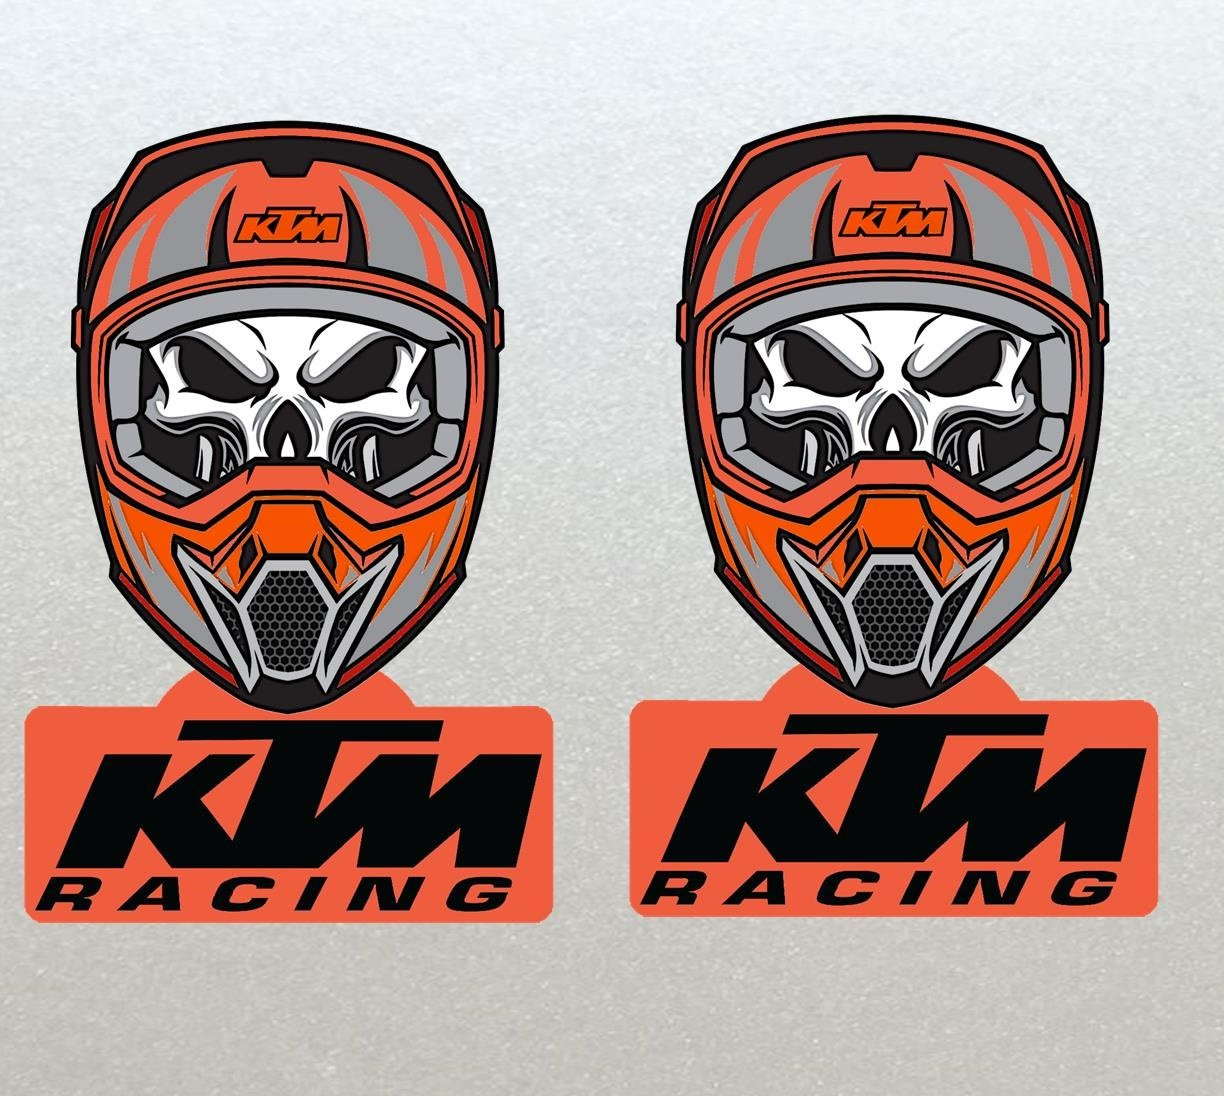 KTM Racing Skull Ghost Rider Style Helmet/Bike Stickers One off unique design x2 (Hih Quality)